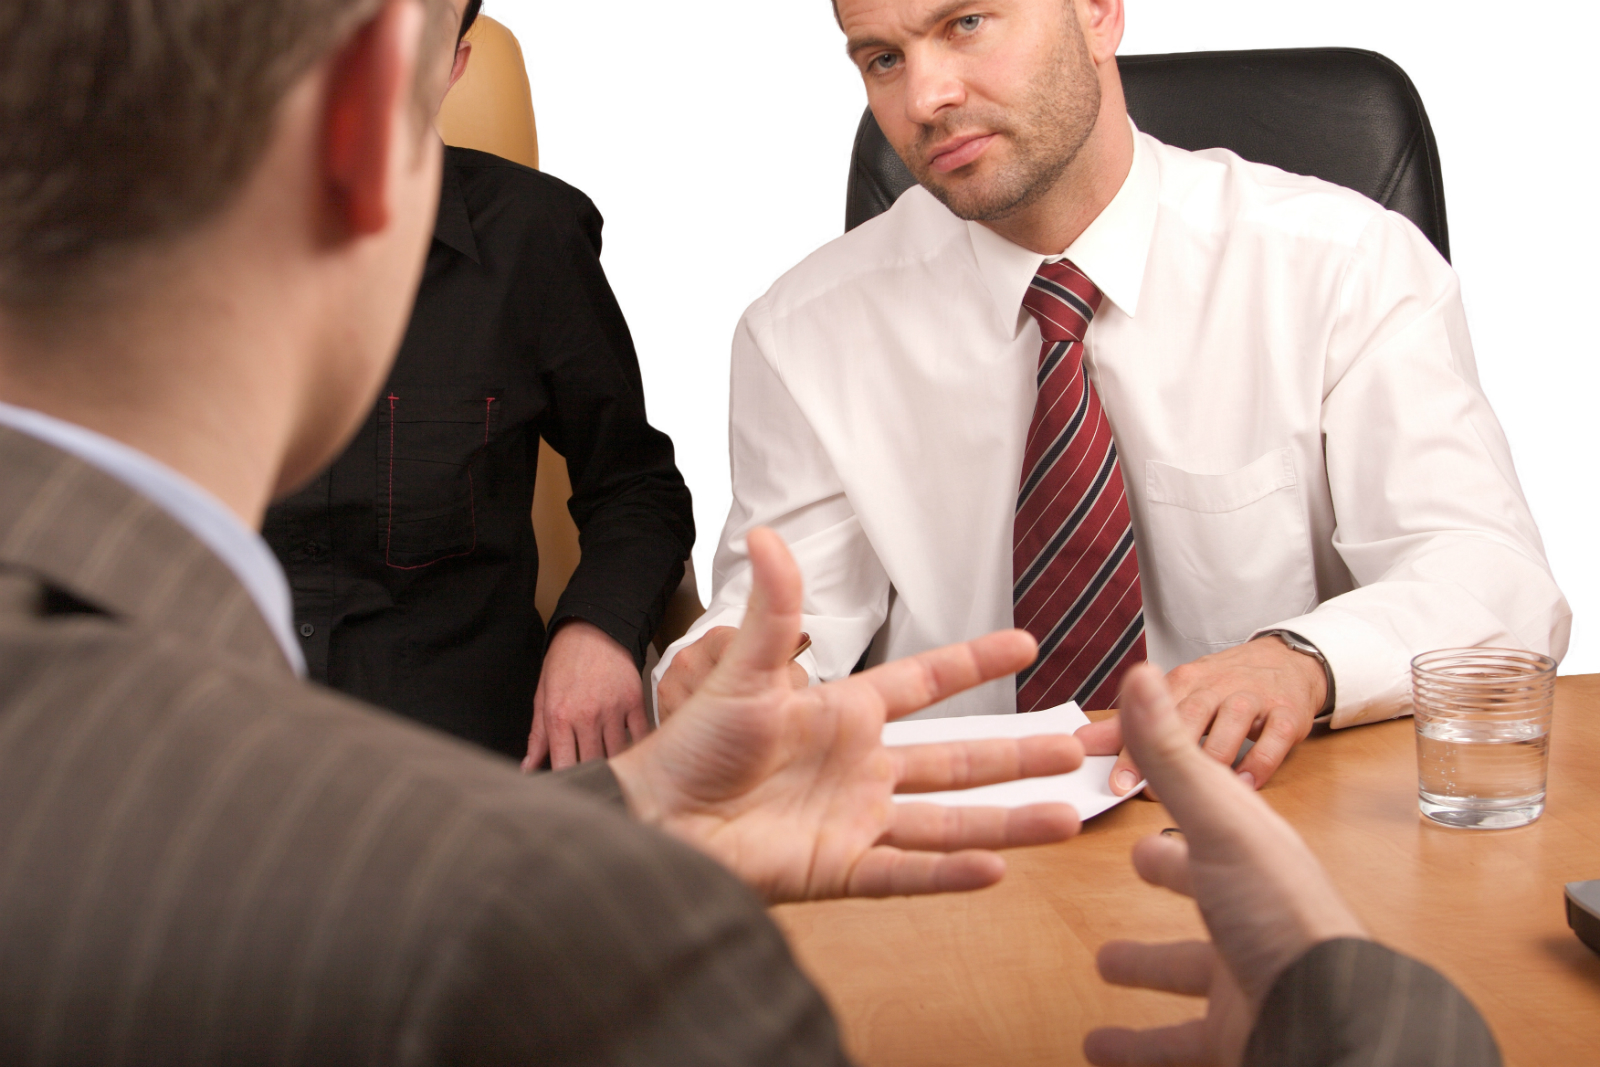 Six Simple Ways to Impress an Interviewer in Less Than Three Minutes